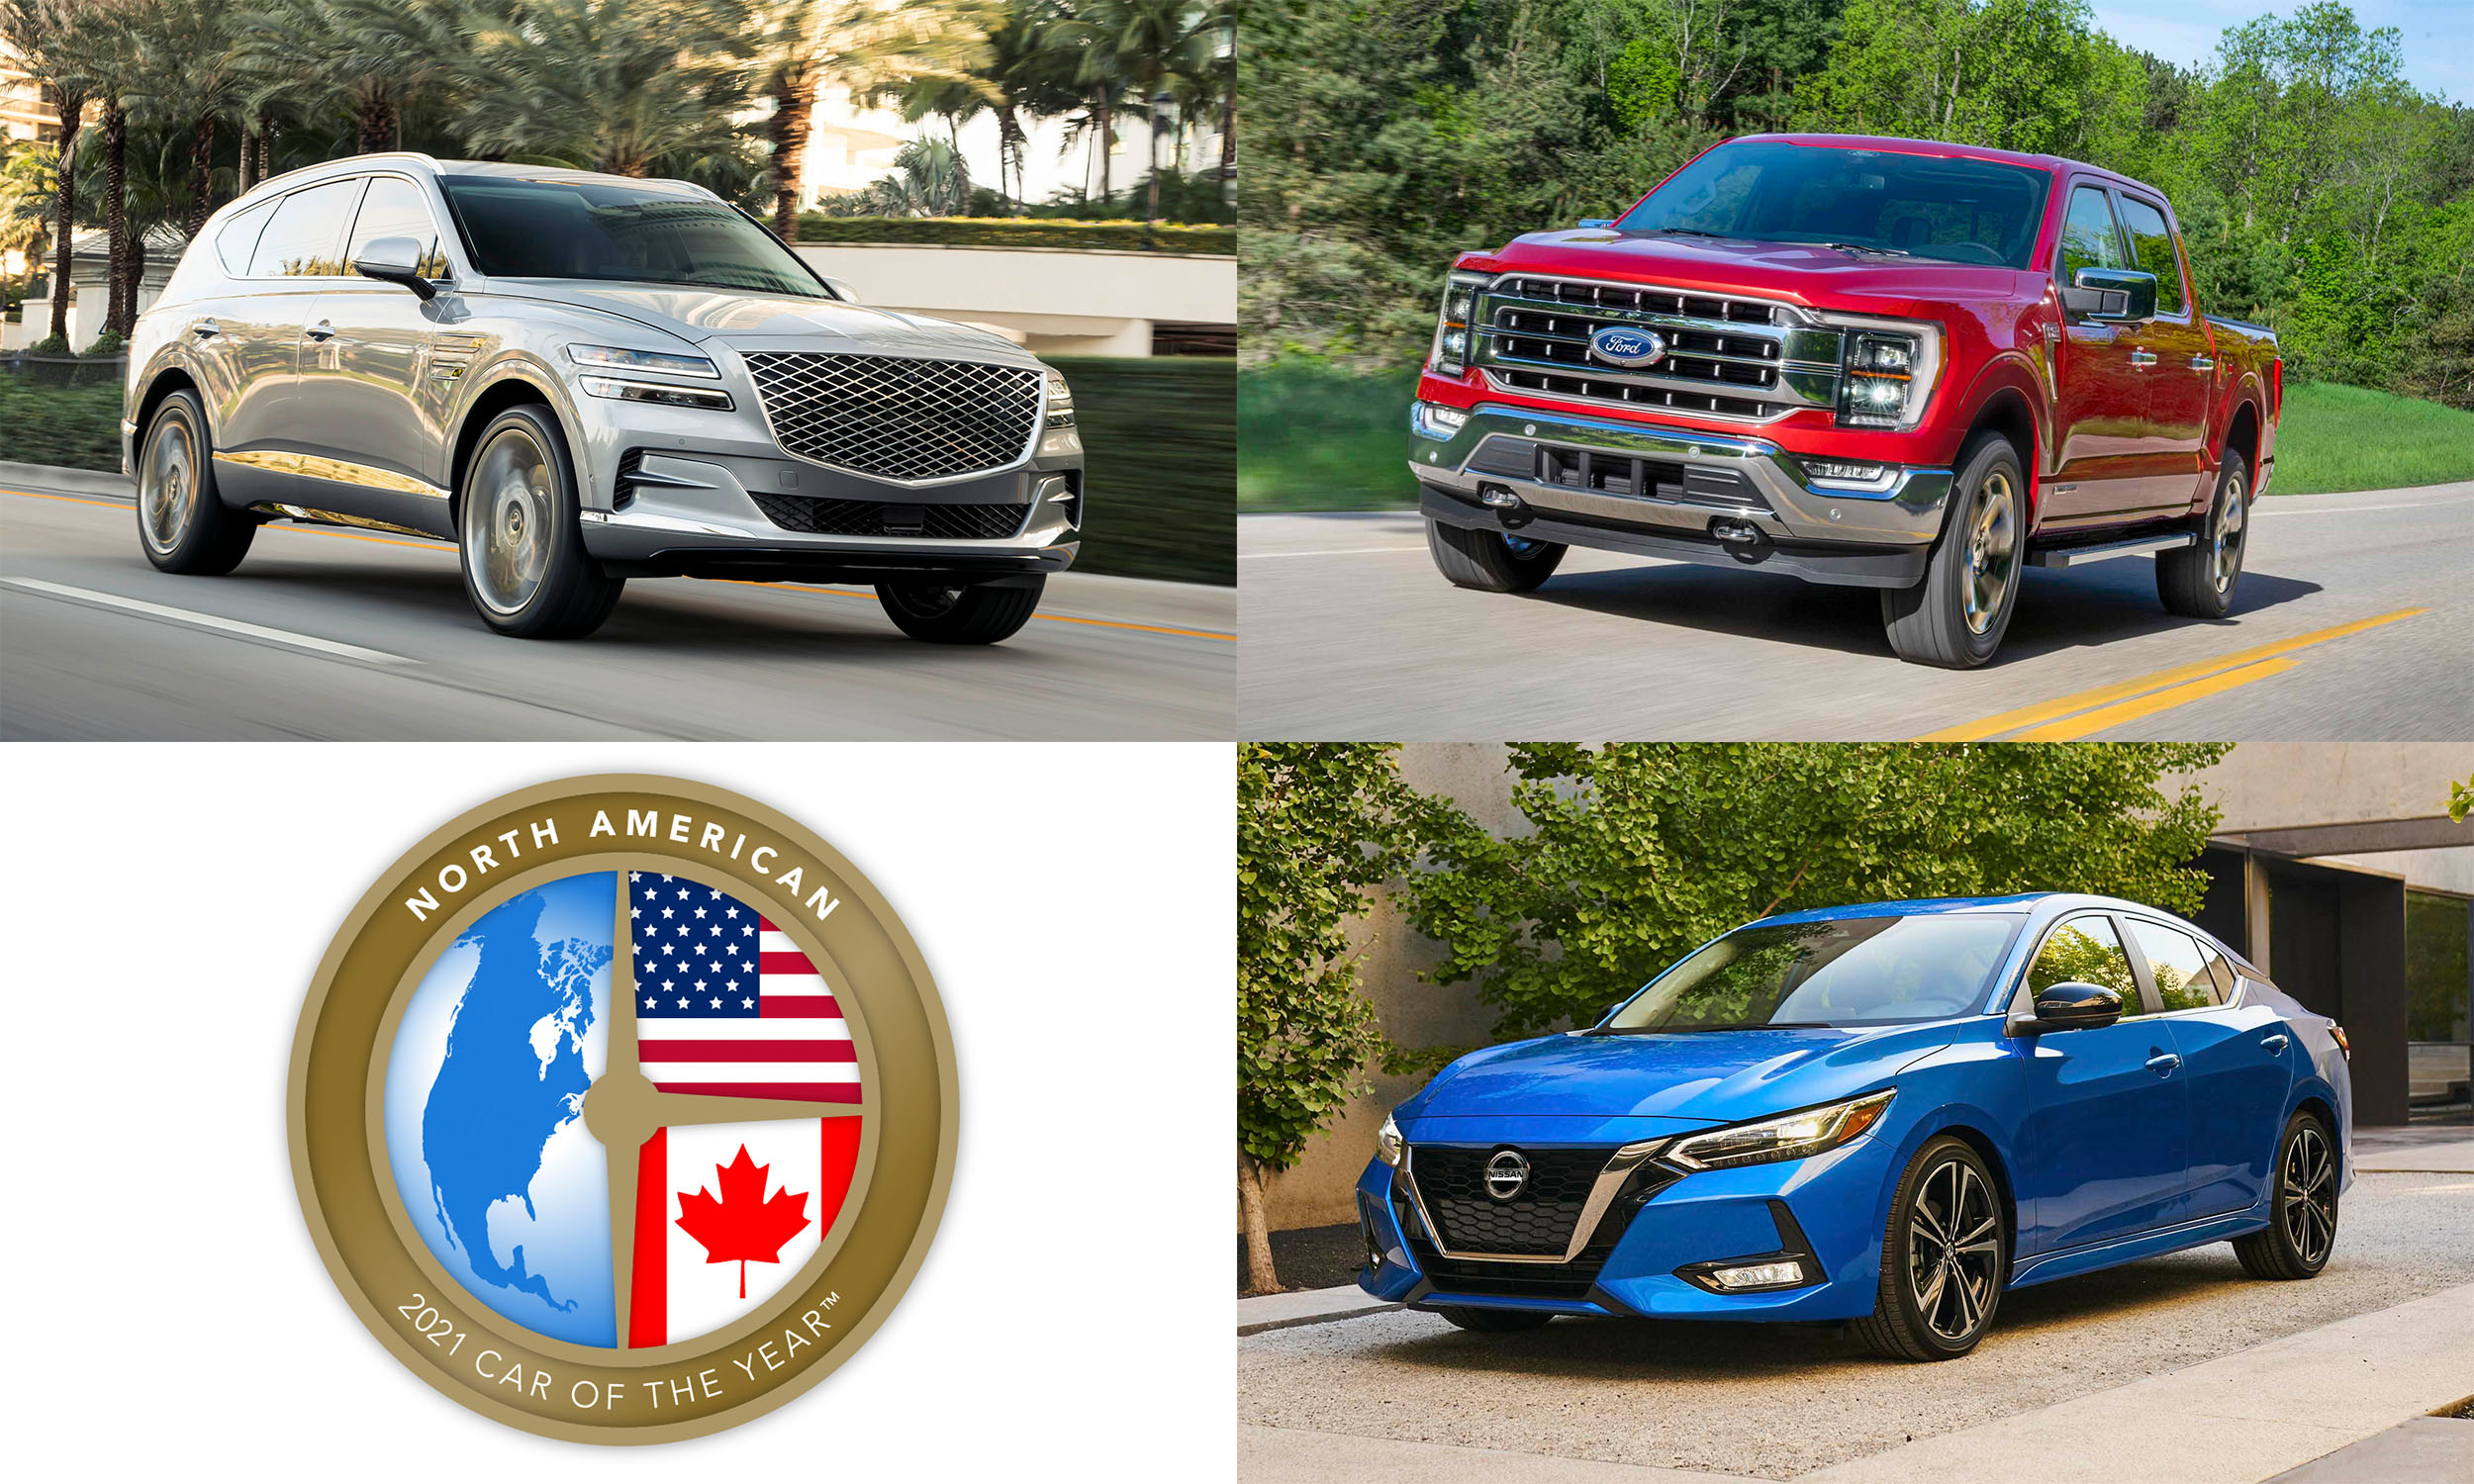 2021 North American Car Truck SUV of the Year Finalistsnbsp